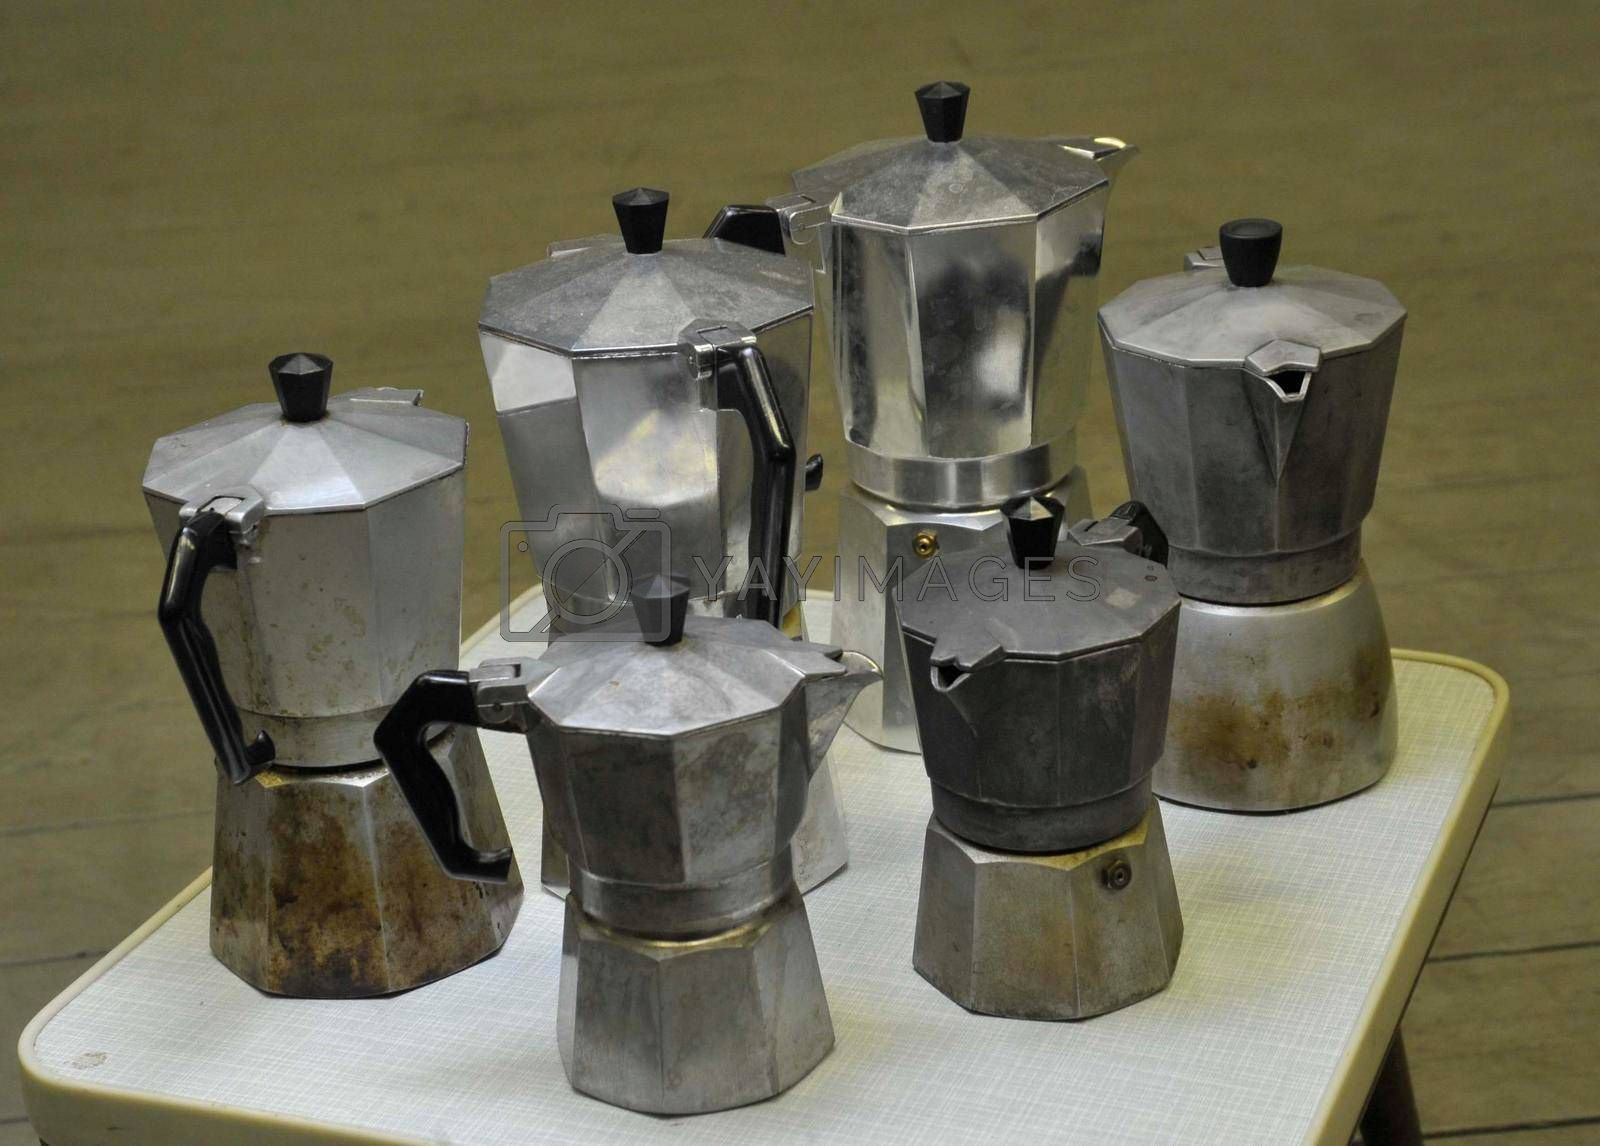 brewing coffee with a moka pot, stove top coffee maker